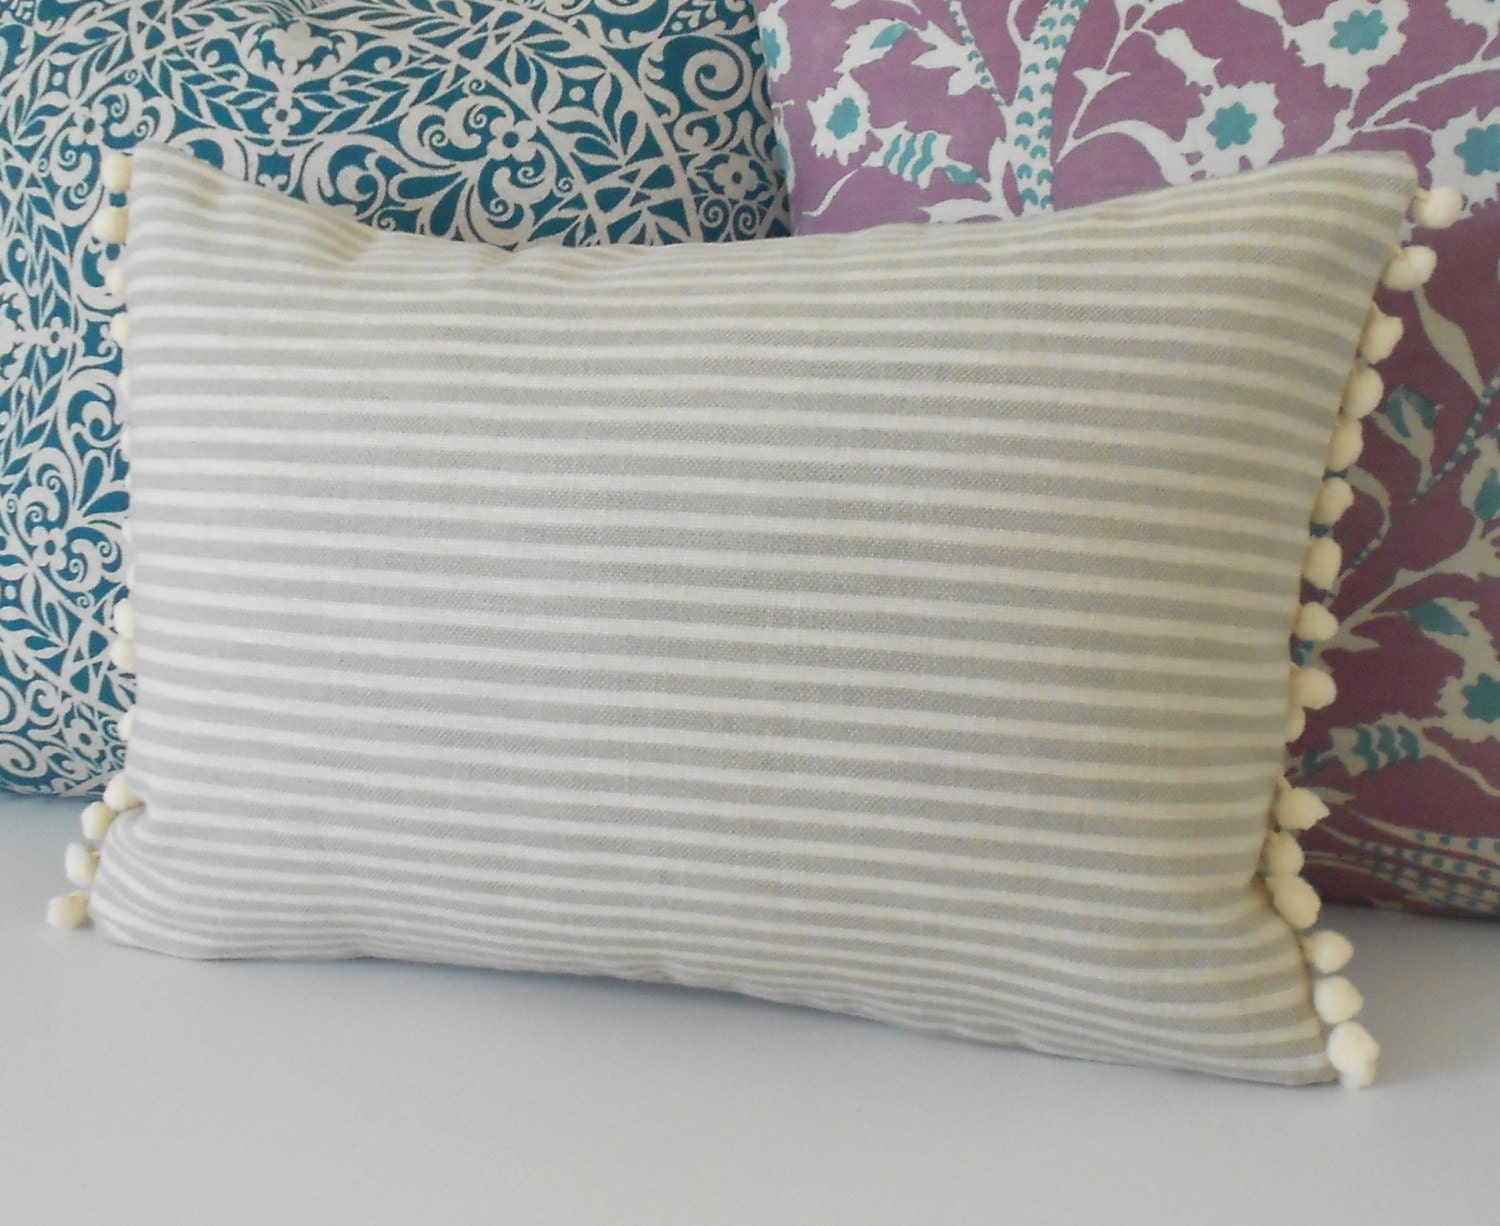 How To Make A Small Decorative Pillow : Tan and cream small stripe decorative pillow cover with pom